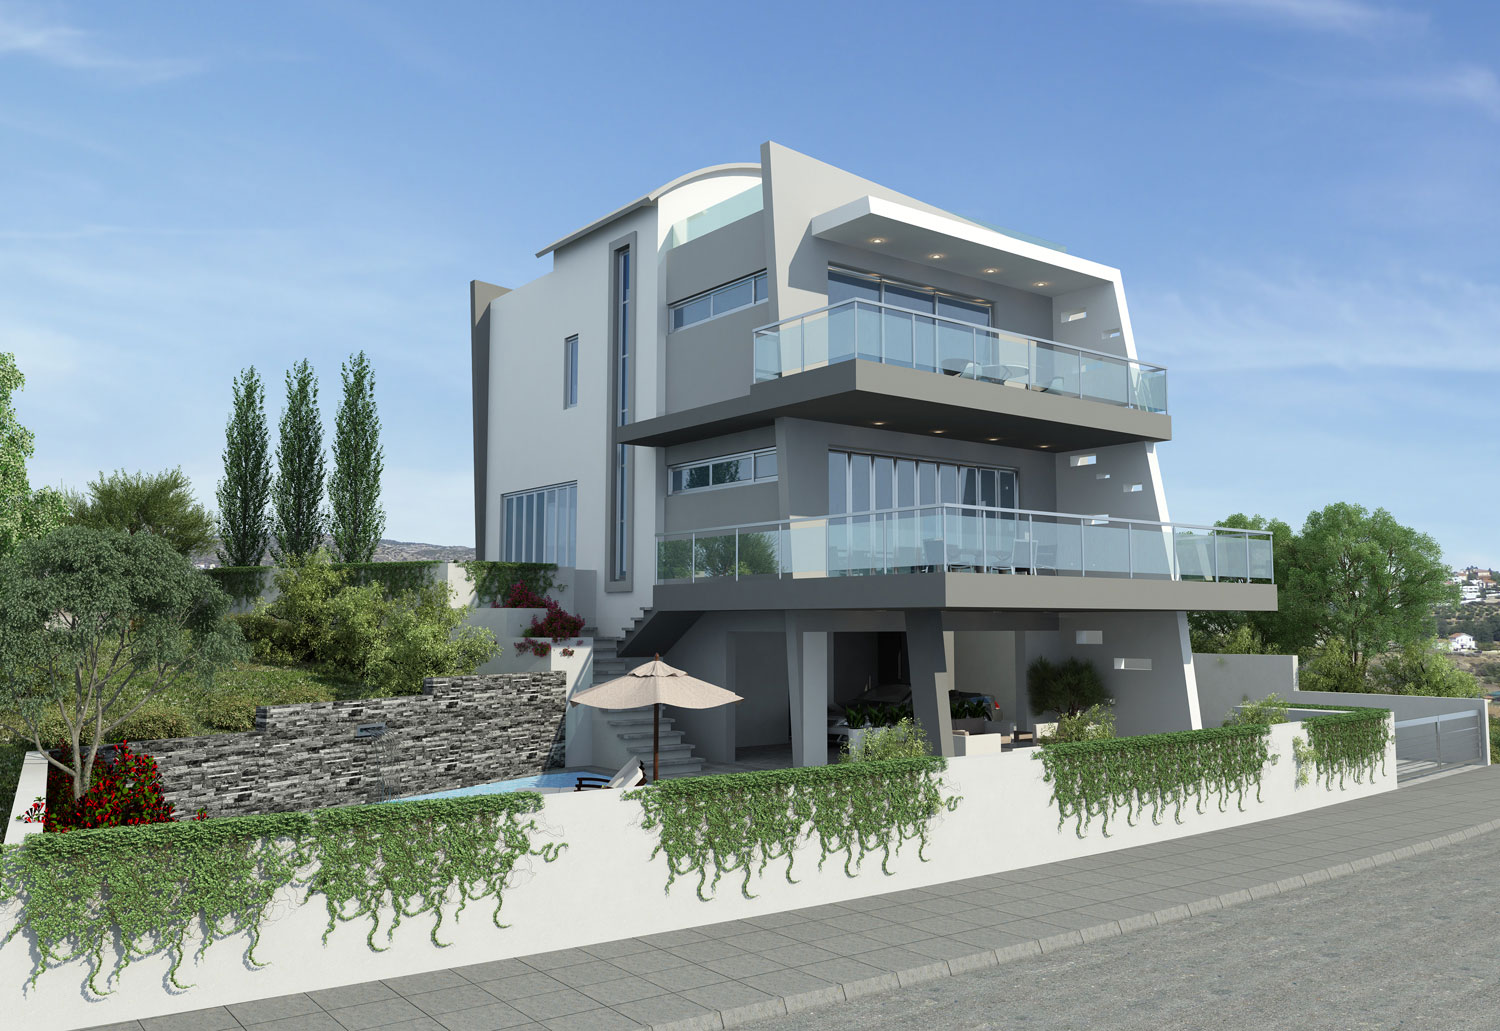 New home designs latest for Modern house models pictures